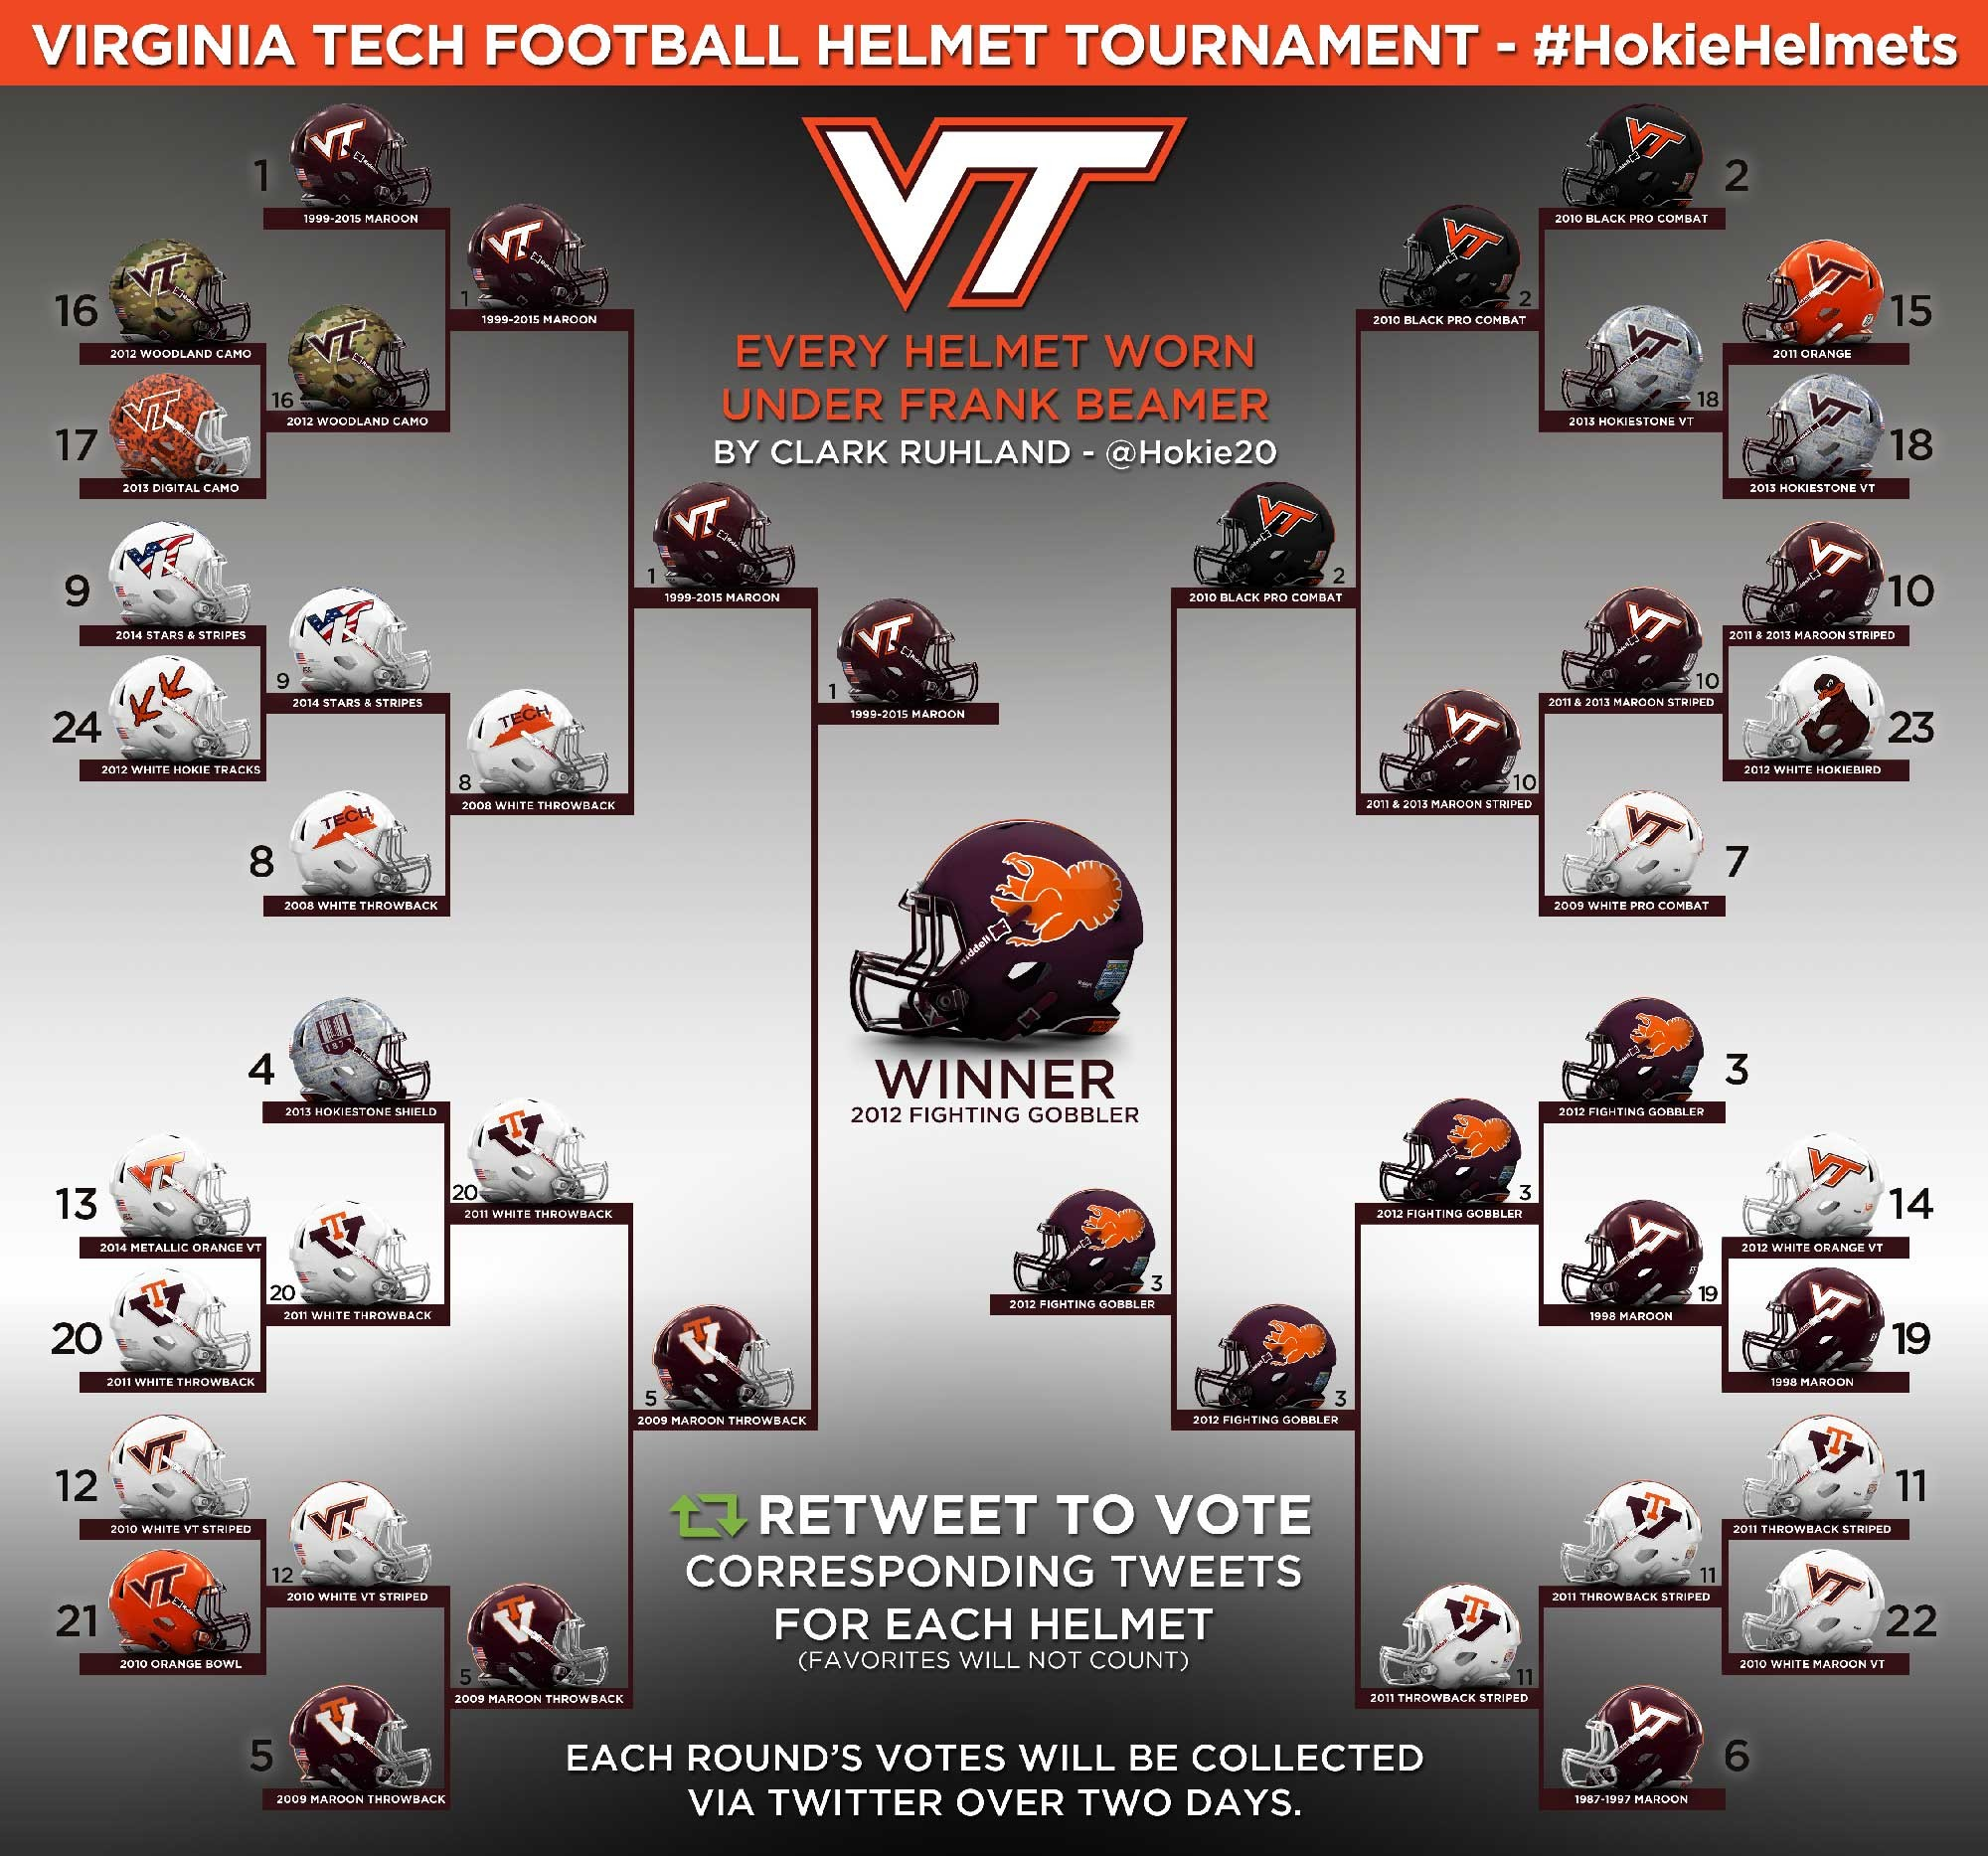 Check out the results of the Hokie Helmet Bracket from the Summer of 2015